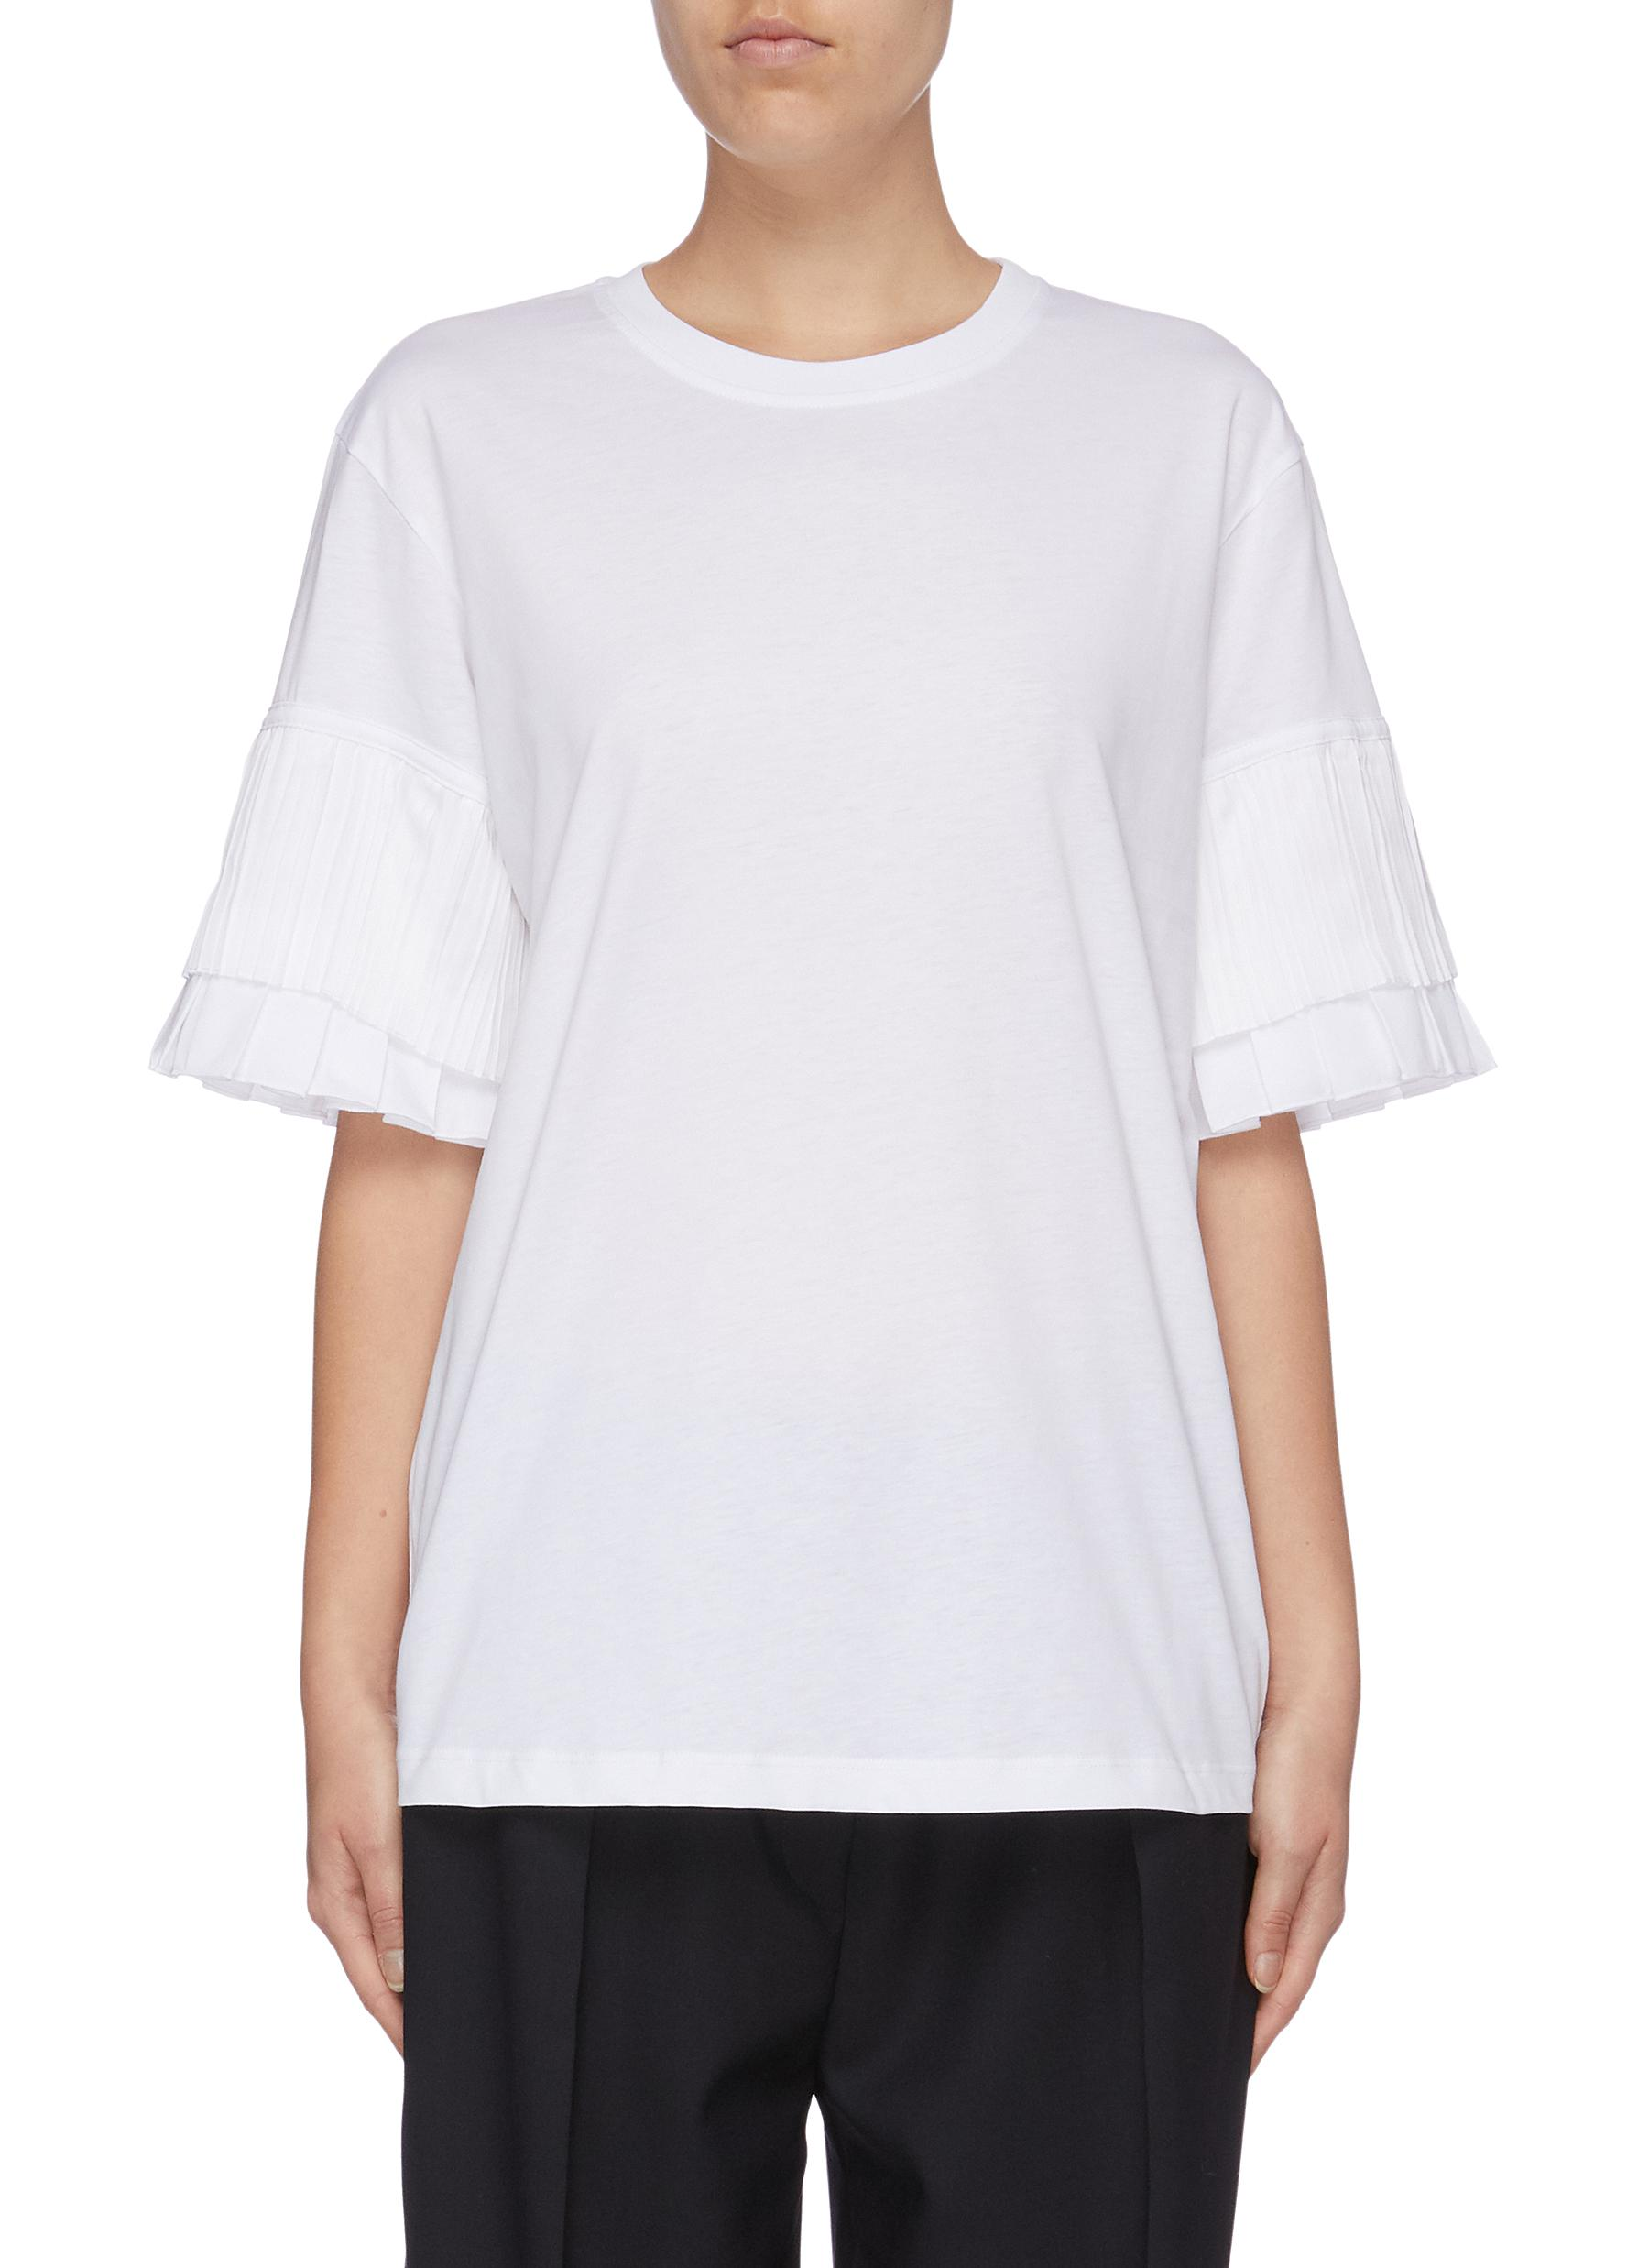 Tiered pleated sleeve T-shirt by Victoria, Victoria Beckham